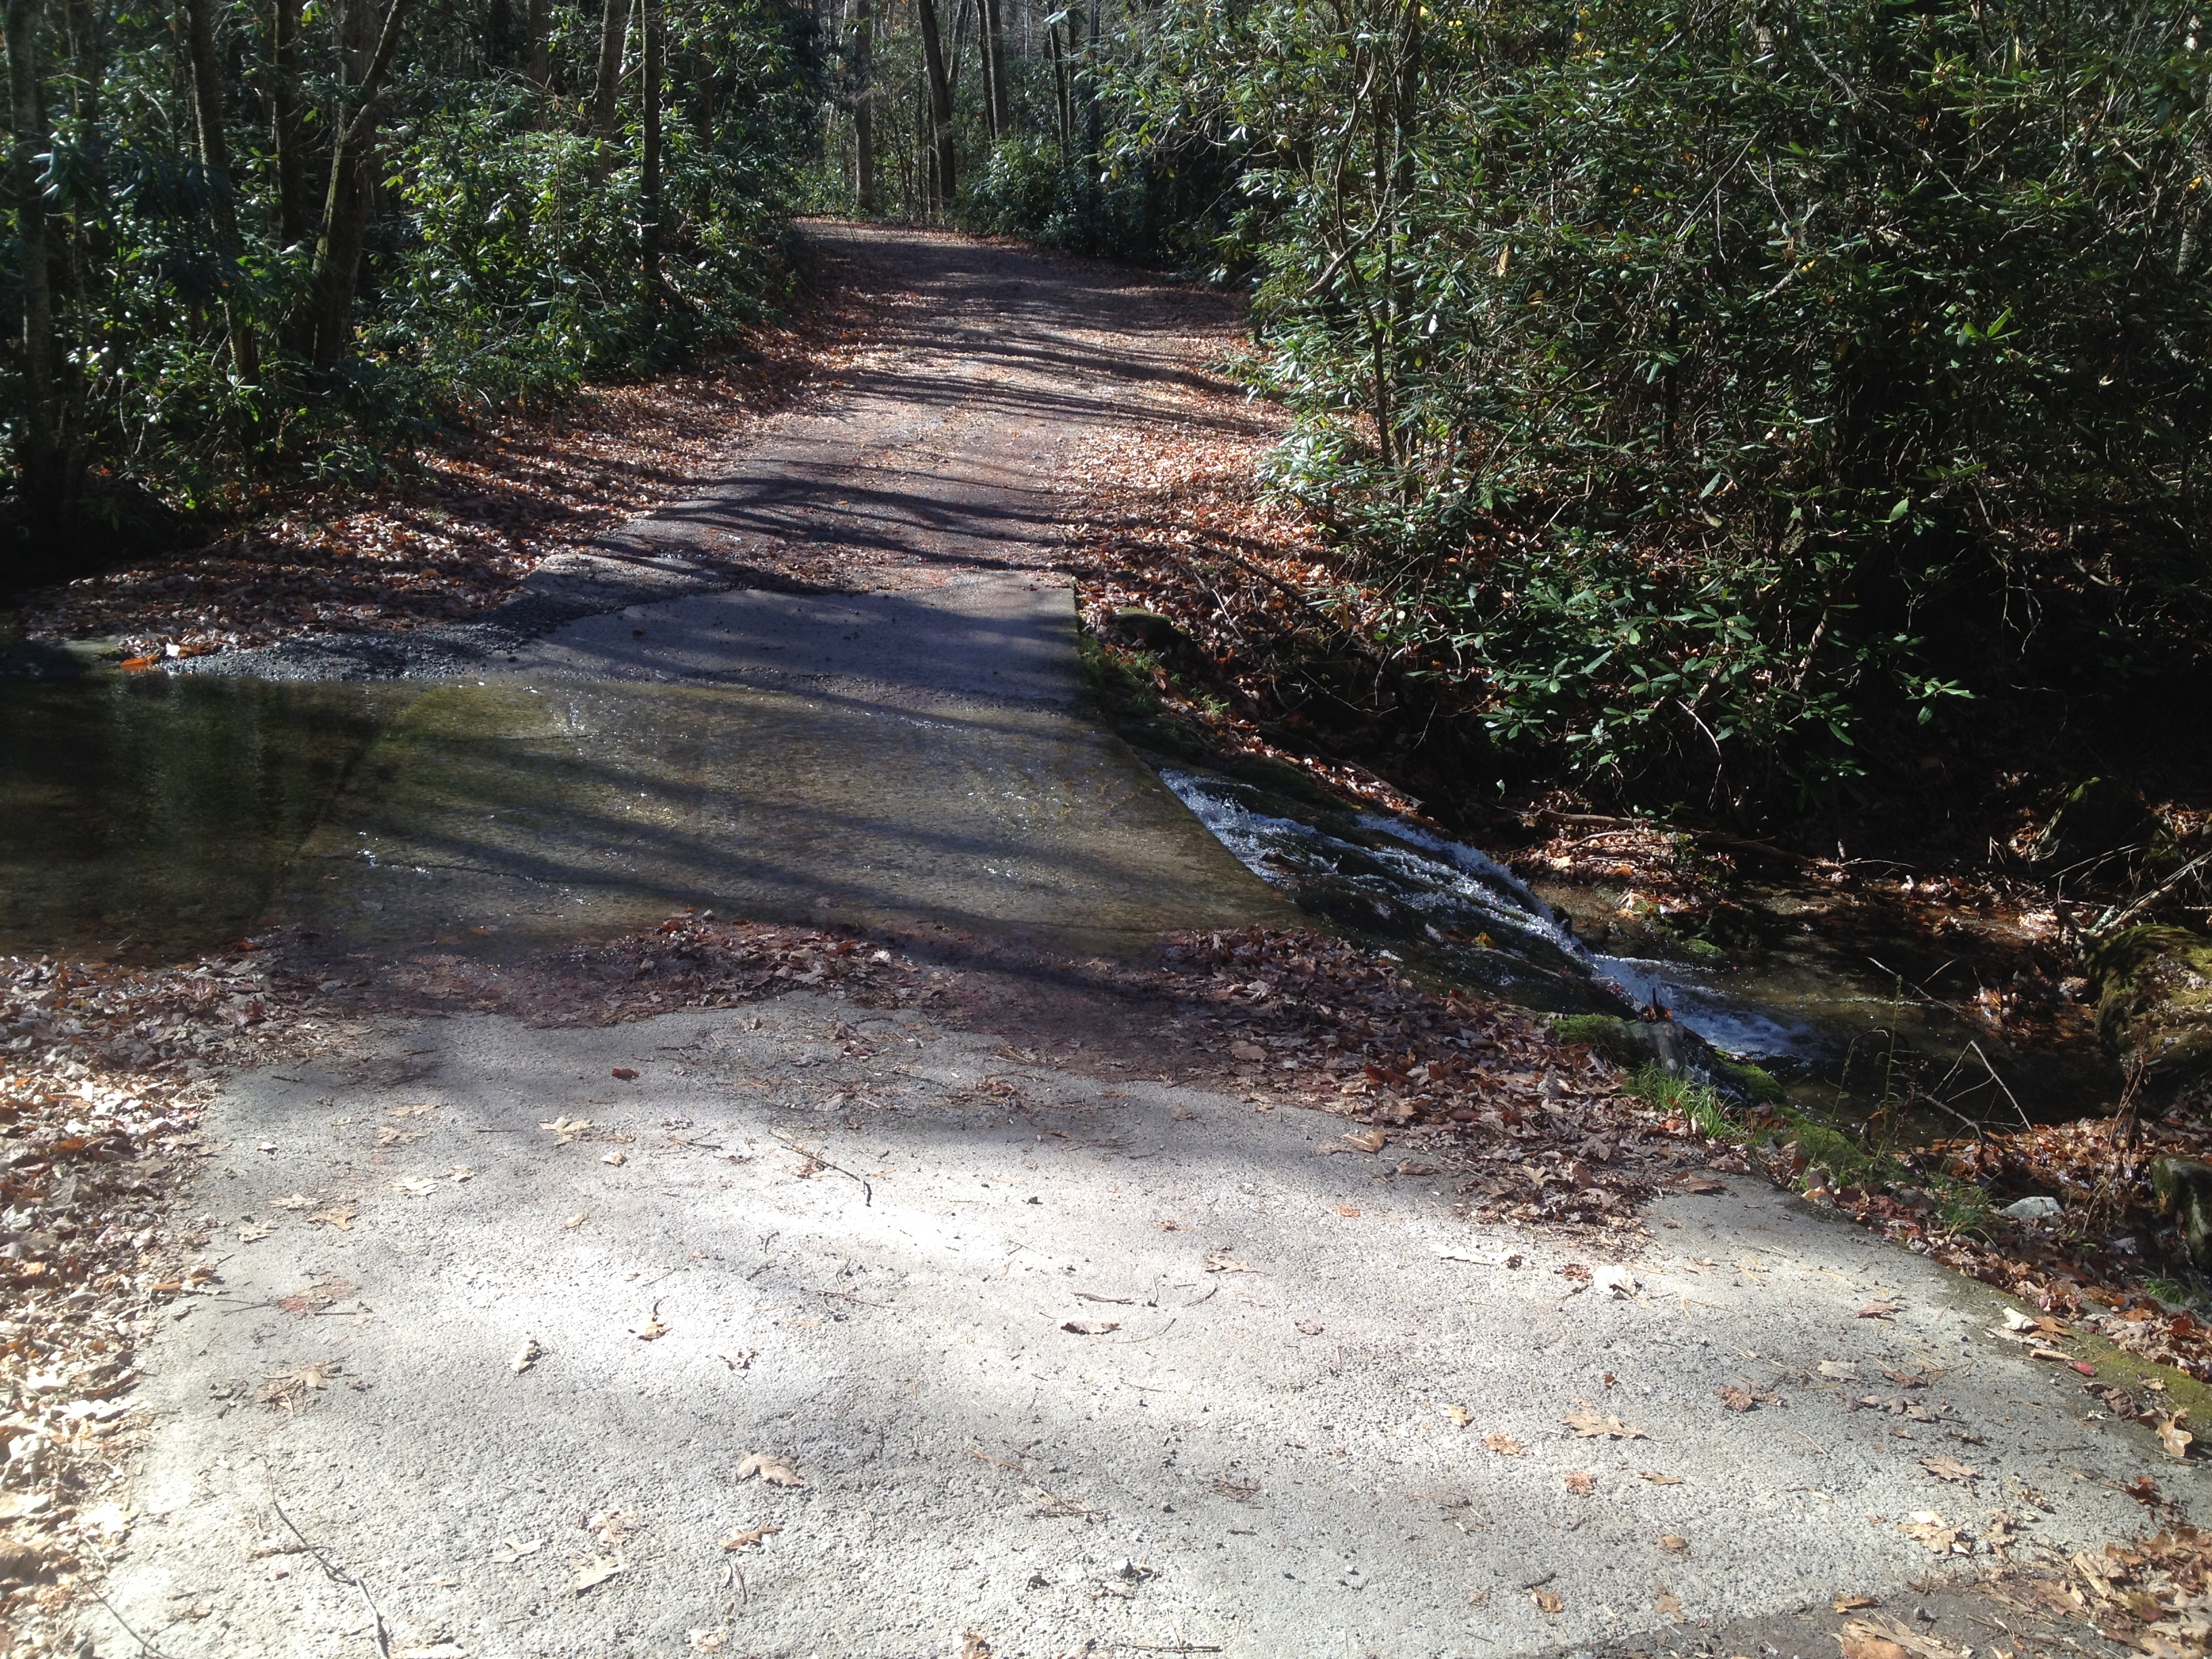 9 miles and a dozen plus water crossings of one-way fun on Parson's Branch Road